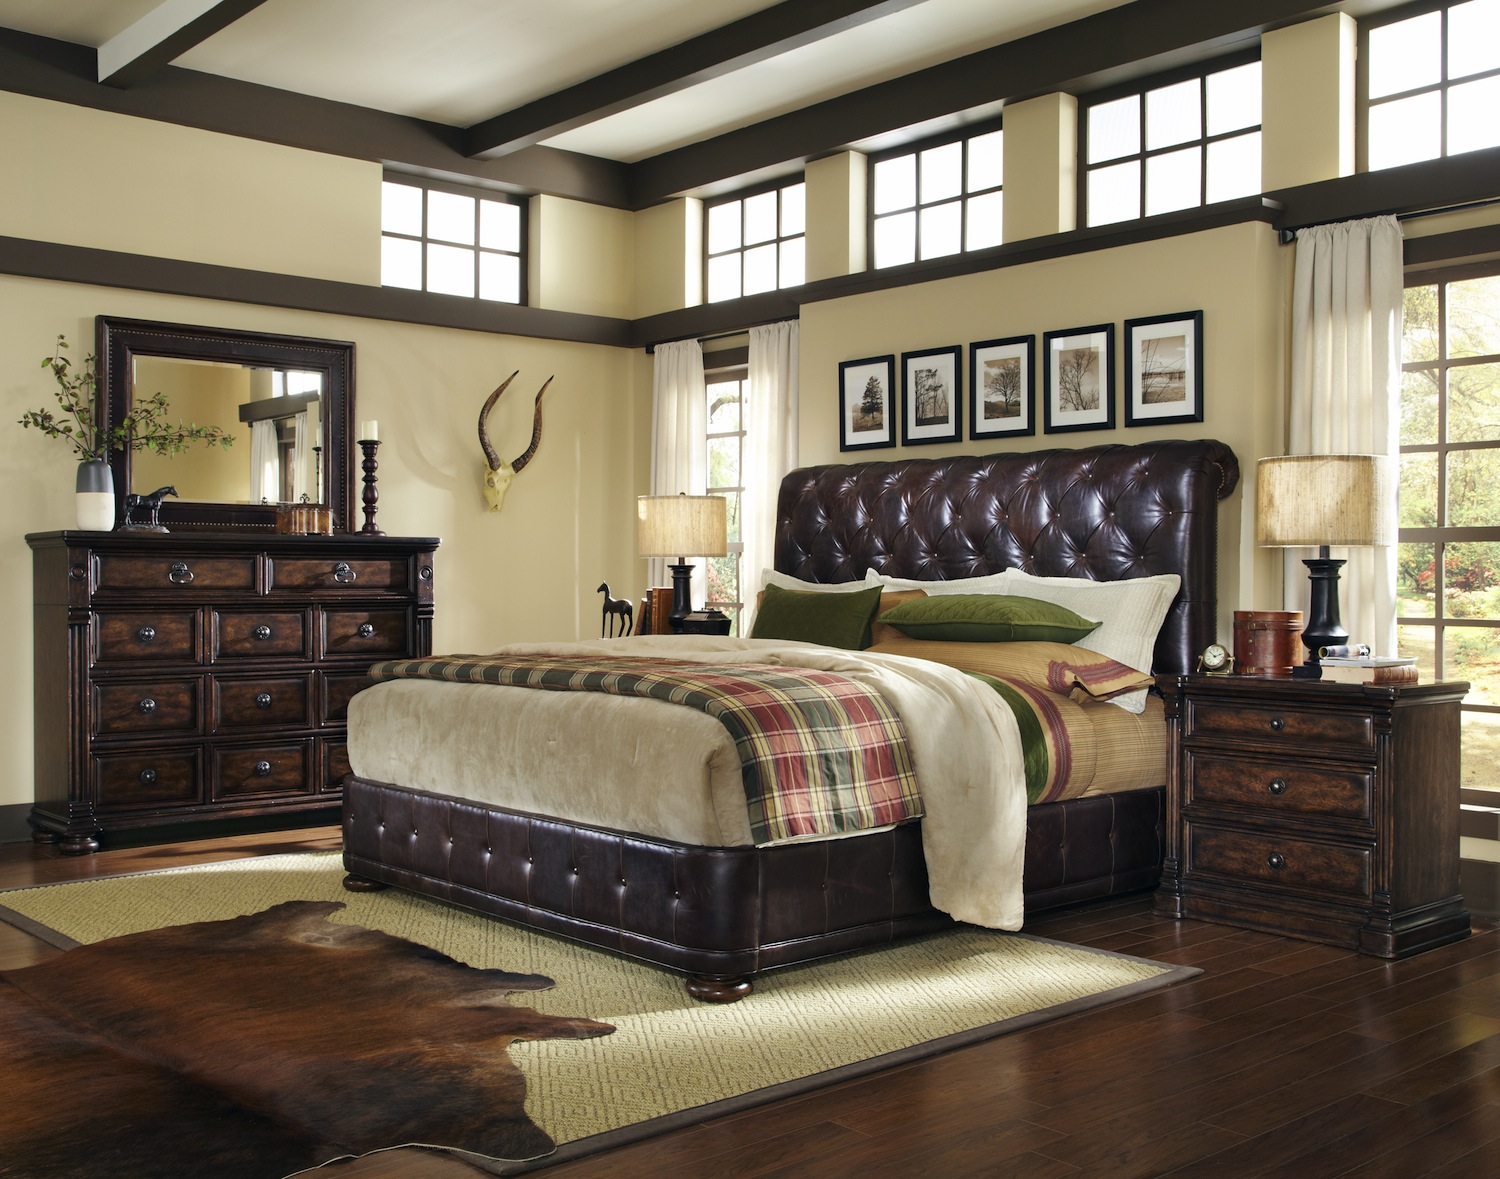 Whiskey Oak Rustic Inspired Upholstered Bedroom Furniture